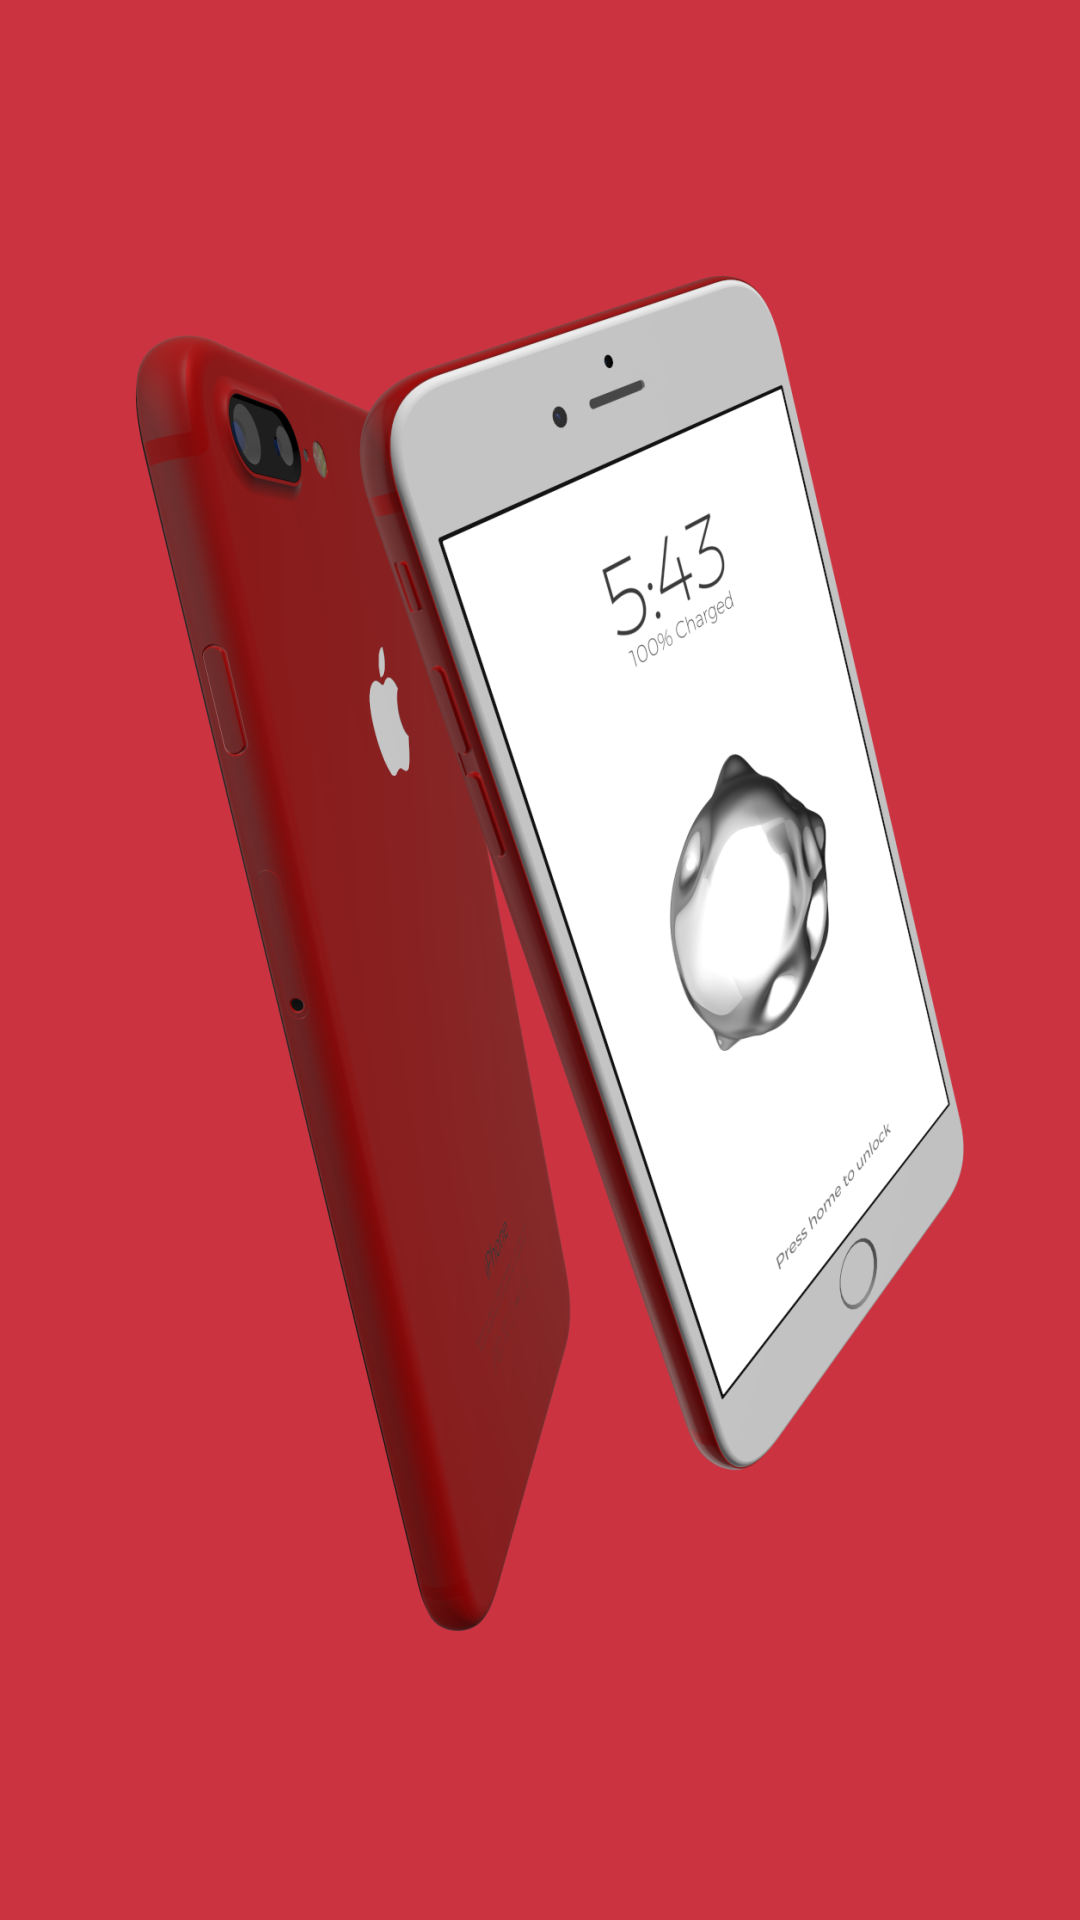 IPhone 7 RED Wallpaper Product Red Theyre All Available On The App Store